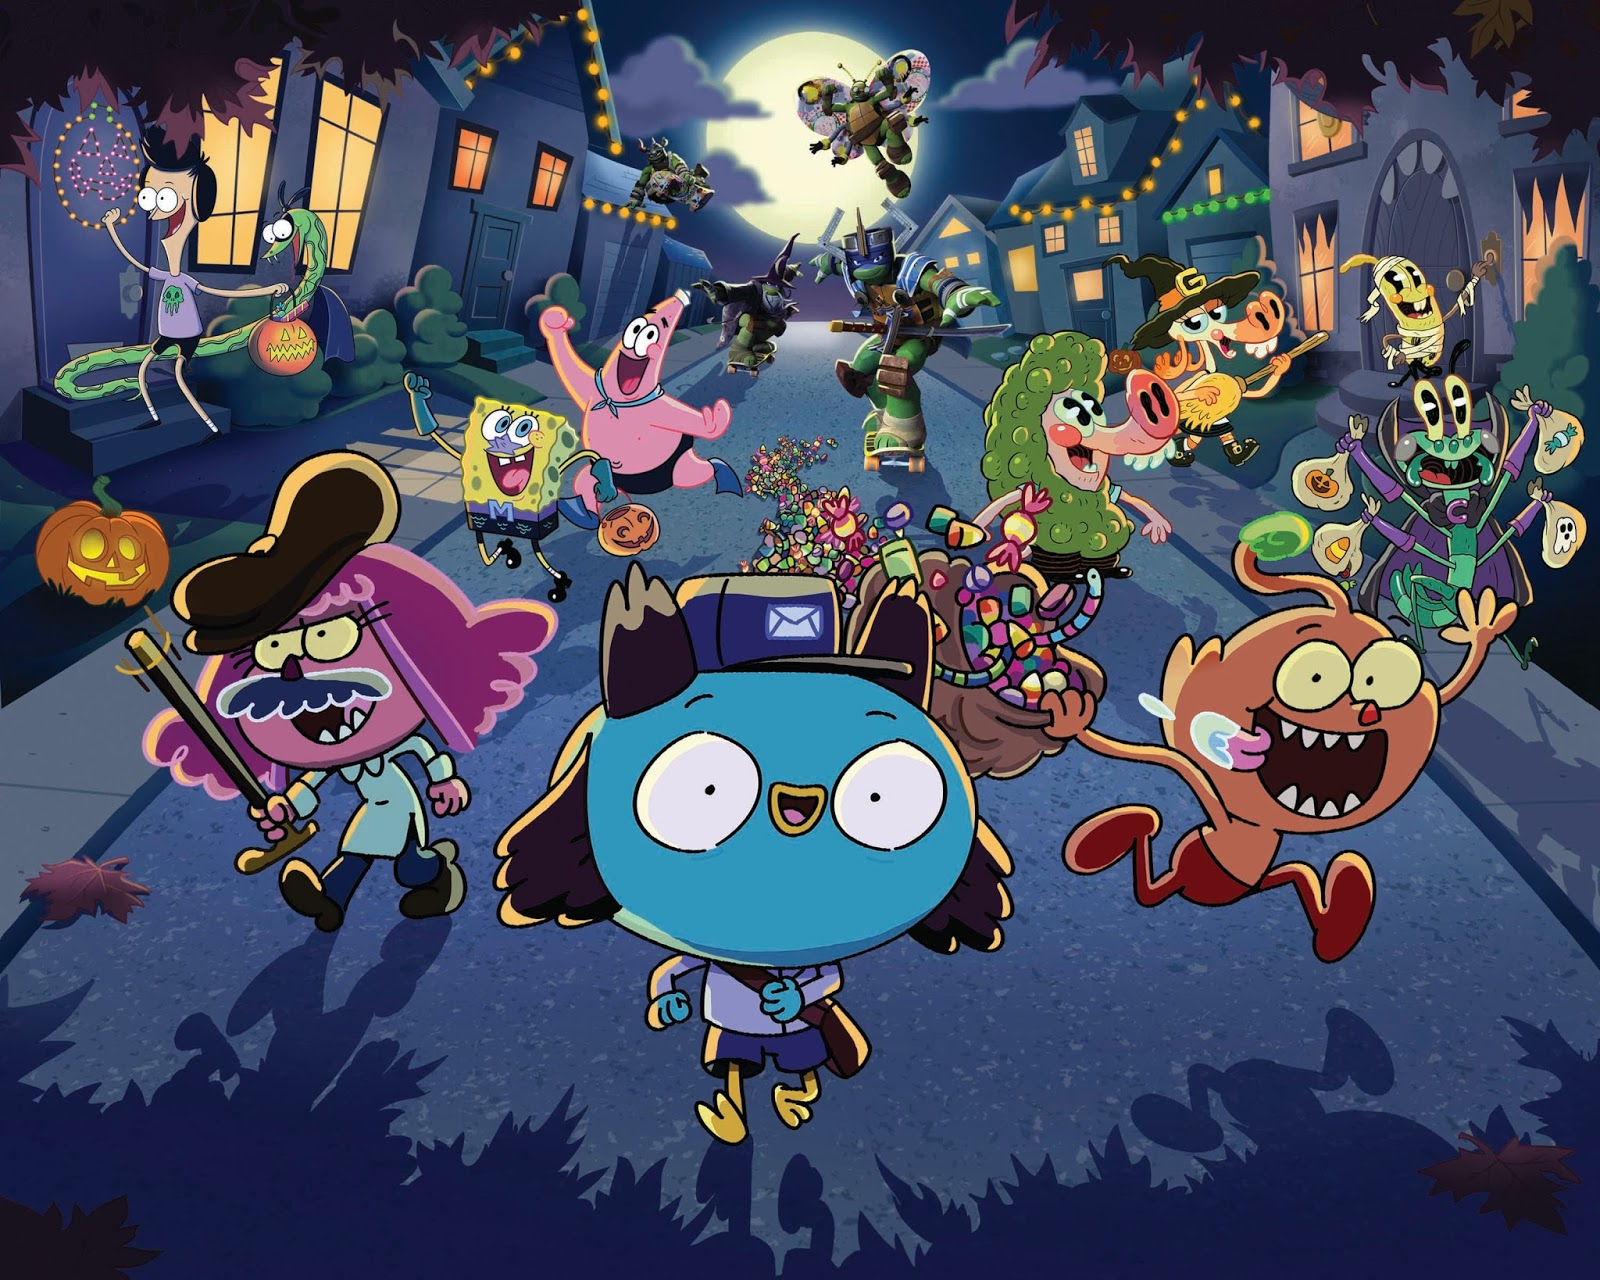 Nickelodeon Announces Halloween Schedule Starting October 12th ...